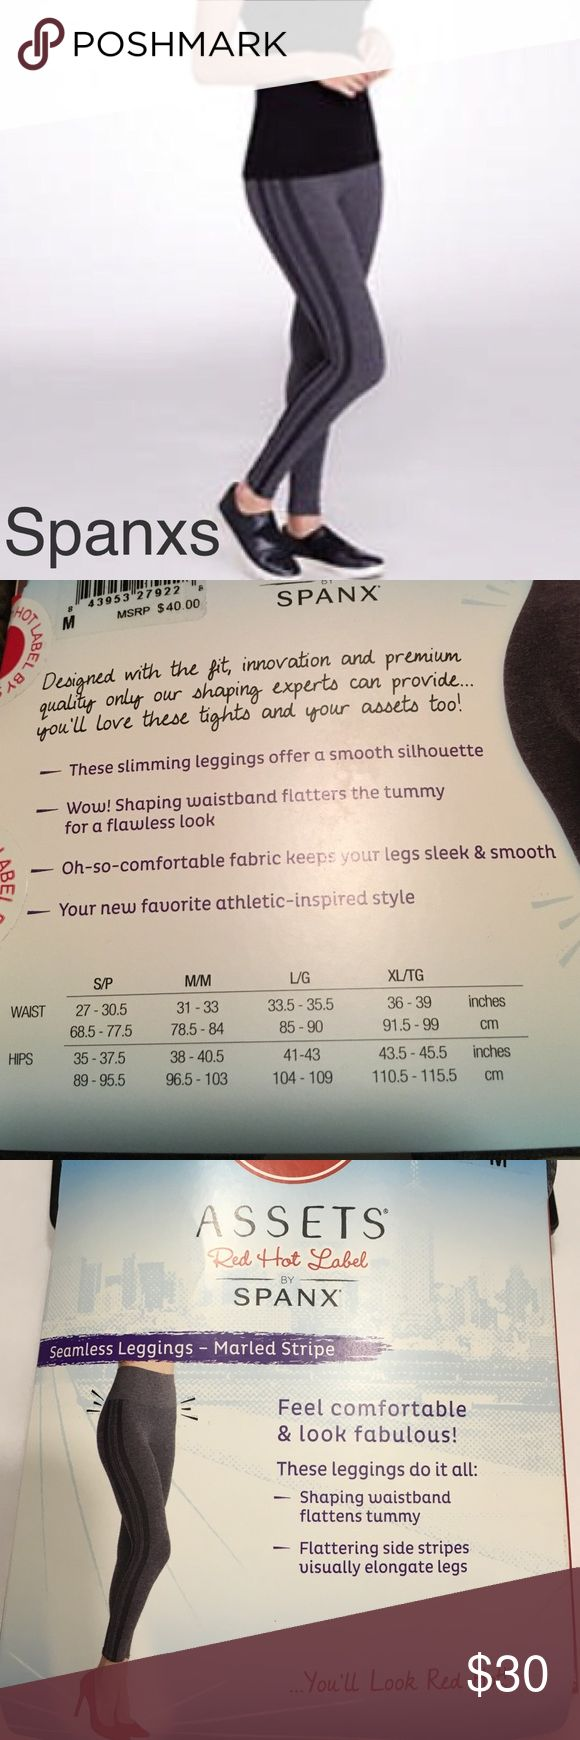 Assets Red Hot Label by Spanxs leggings Assets Red Hot Label by Spanxs leggings. Two tone grey marled stripe. Shaping waistband flattens tummy. Flattering side stripes visually elongate legs SPANX Pants Leggings